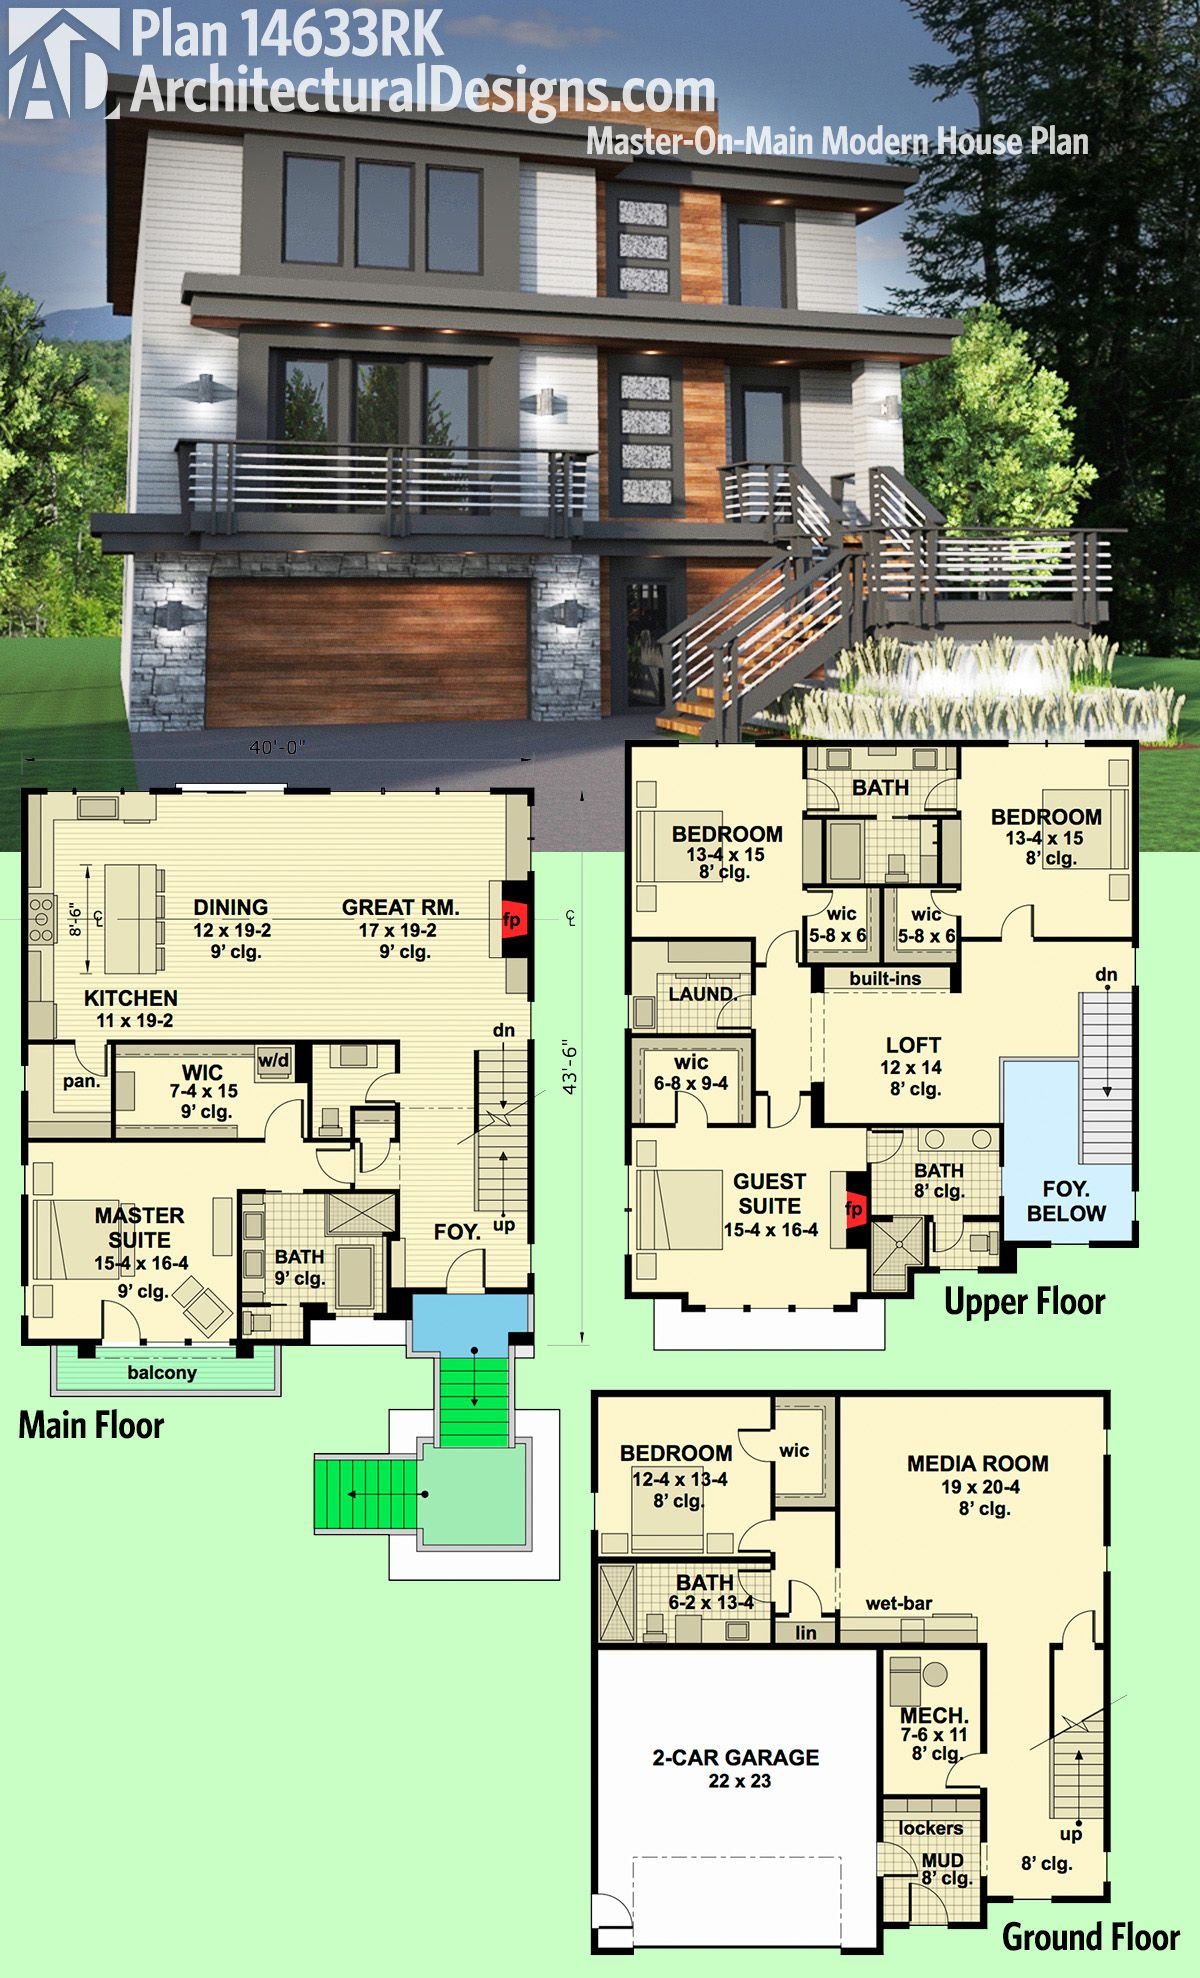 Architectural Designs Modern House Plan 14633RK Gives You 5 Beds Including  A Master Suite With Its